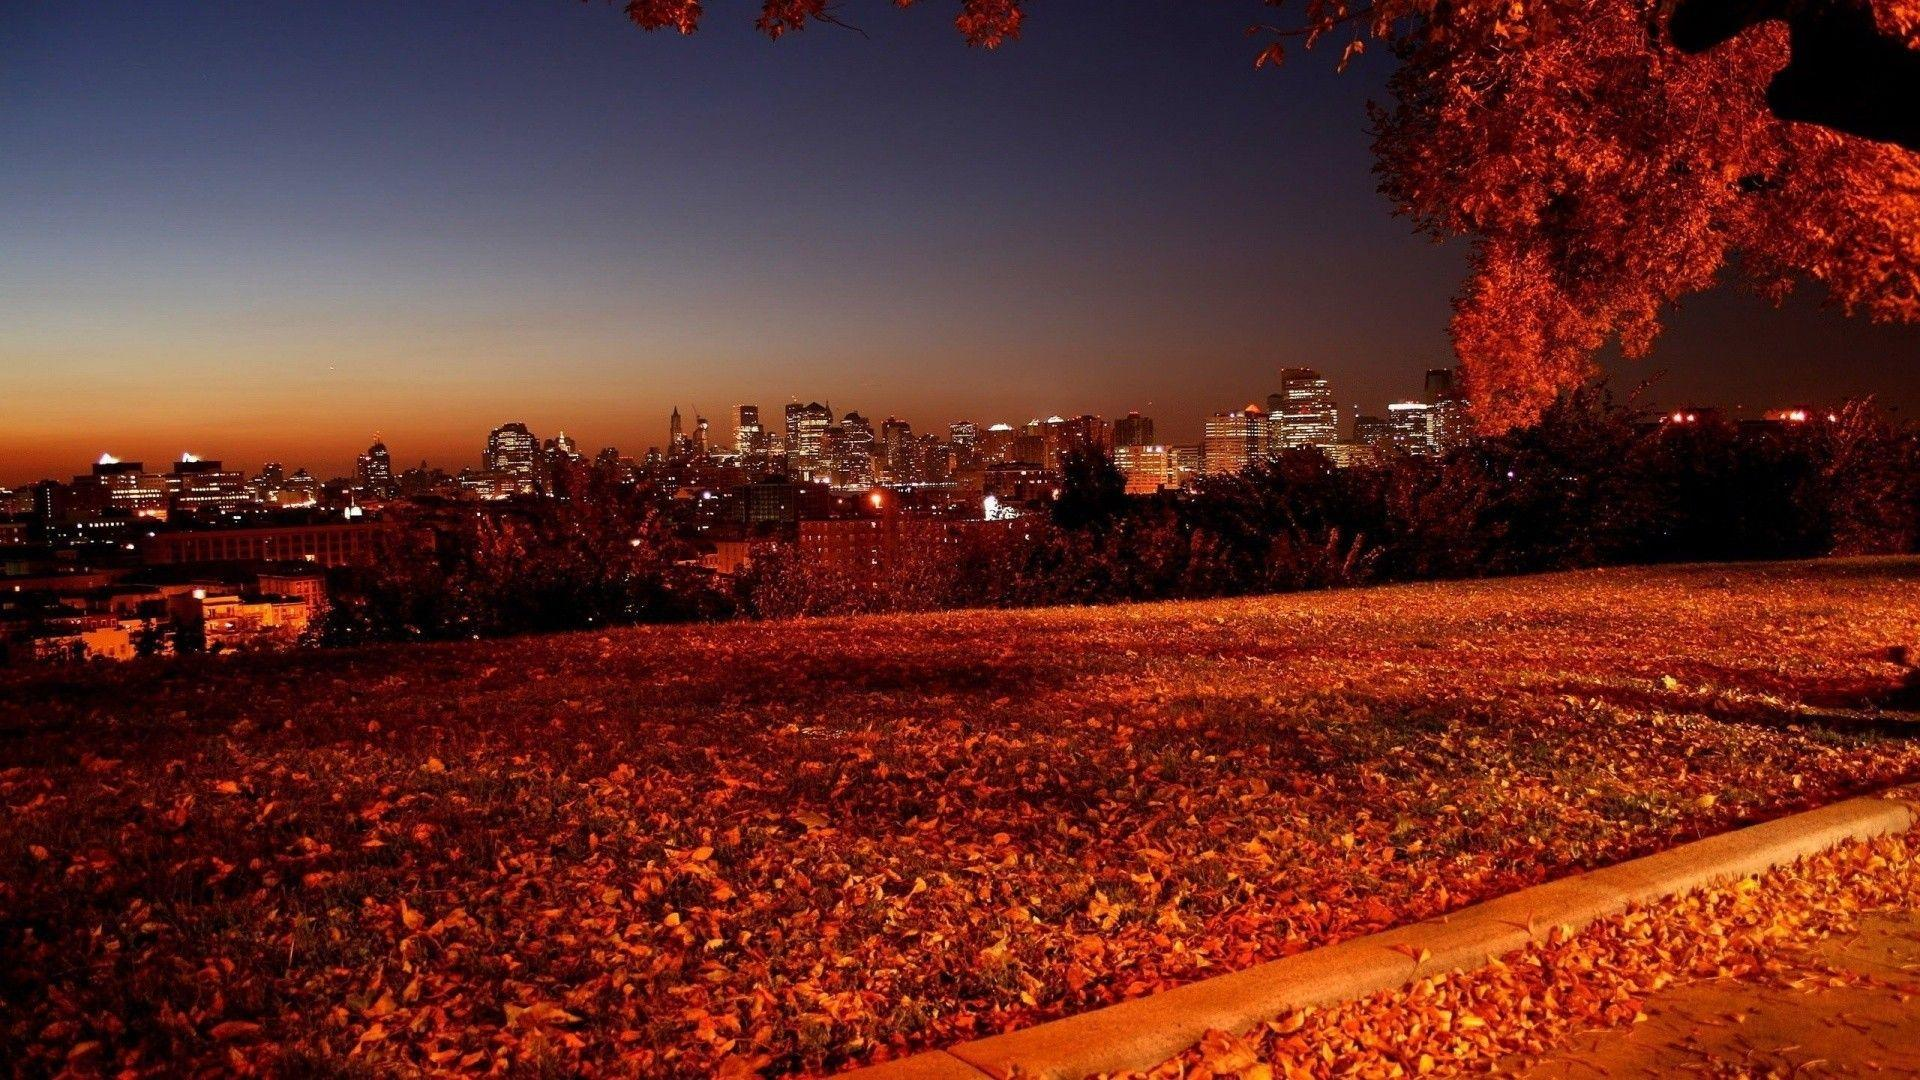 Autumn Night Wallpapers Wallpaper Cave